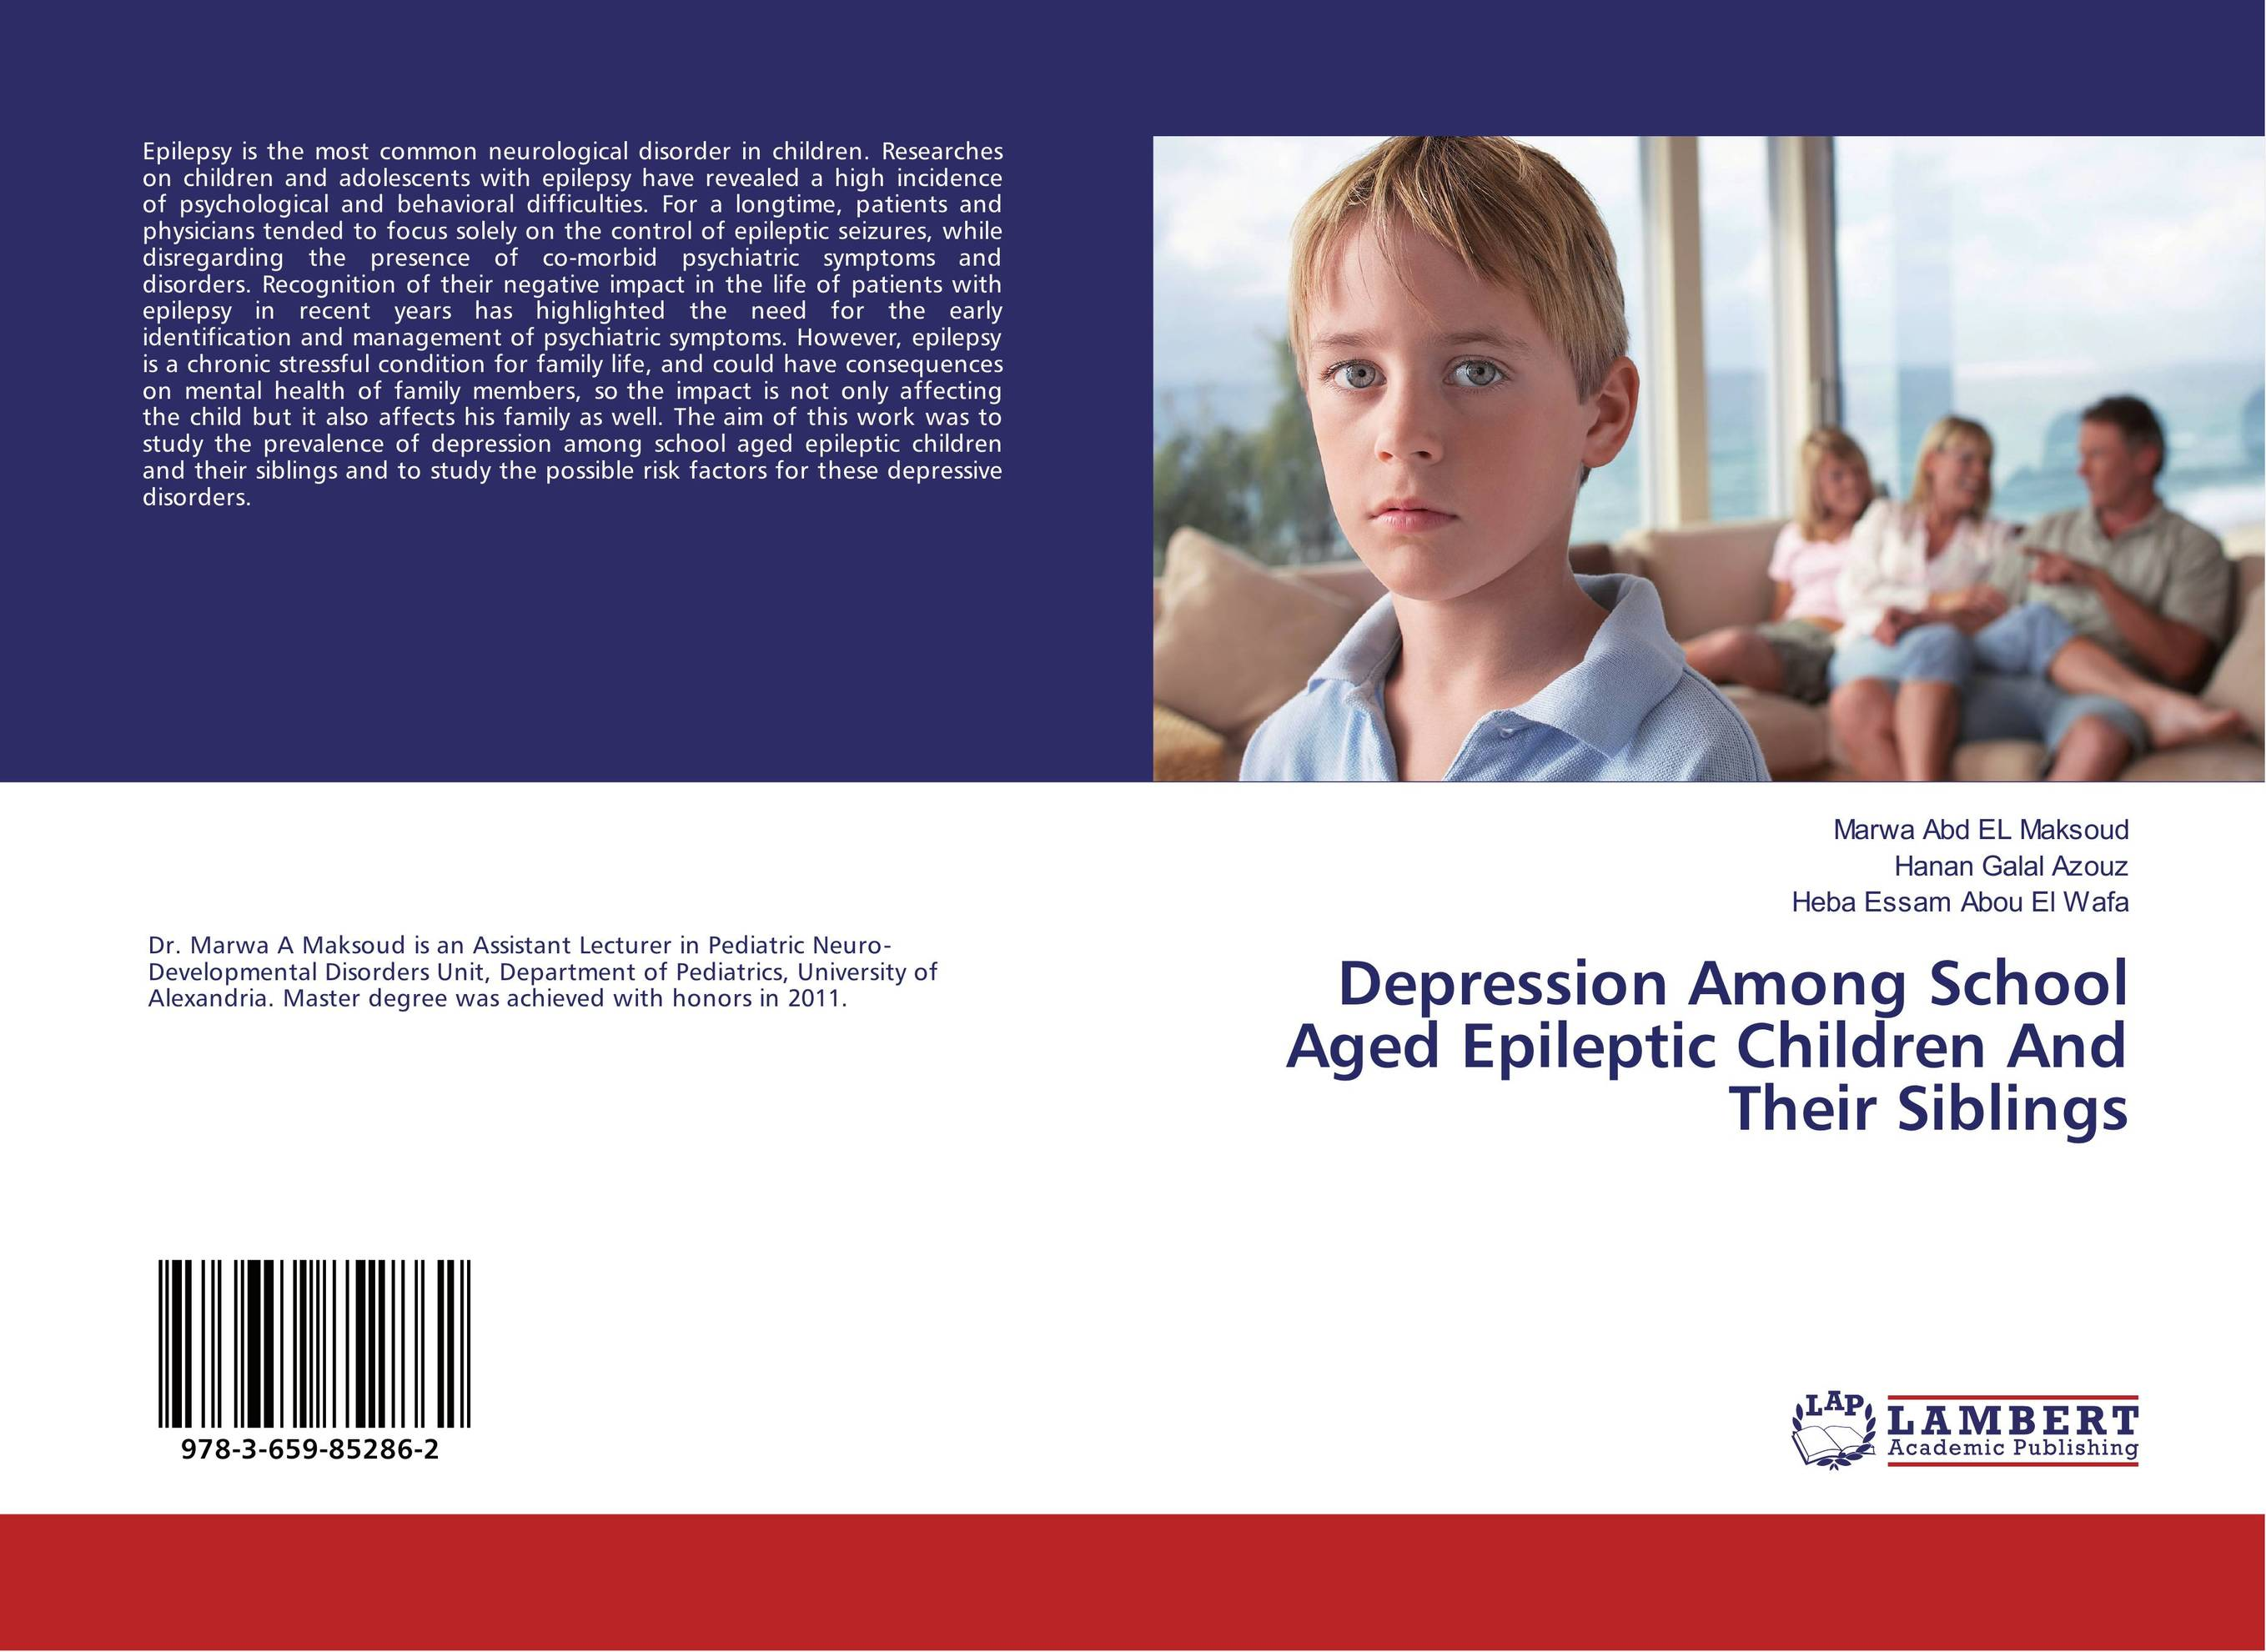 Depression Among School Aged Epileptic Children And Their Siblings santal psychiatric patients